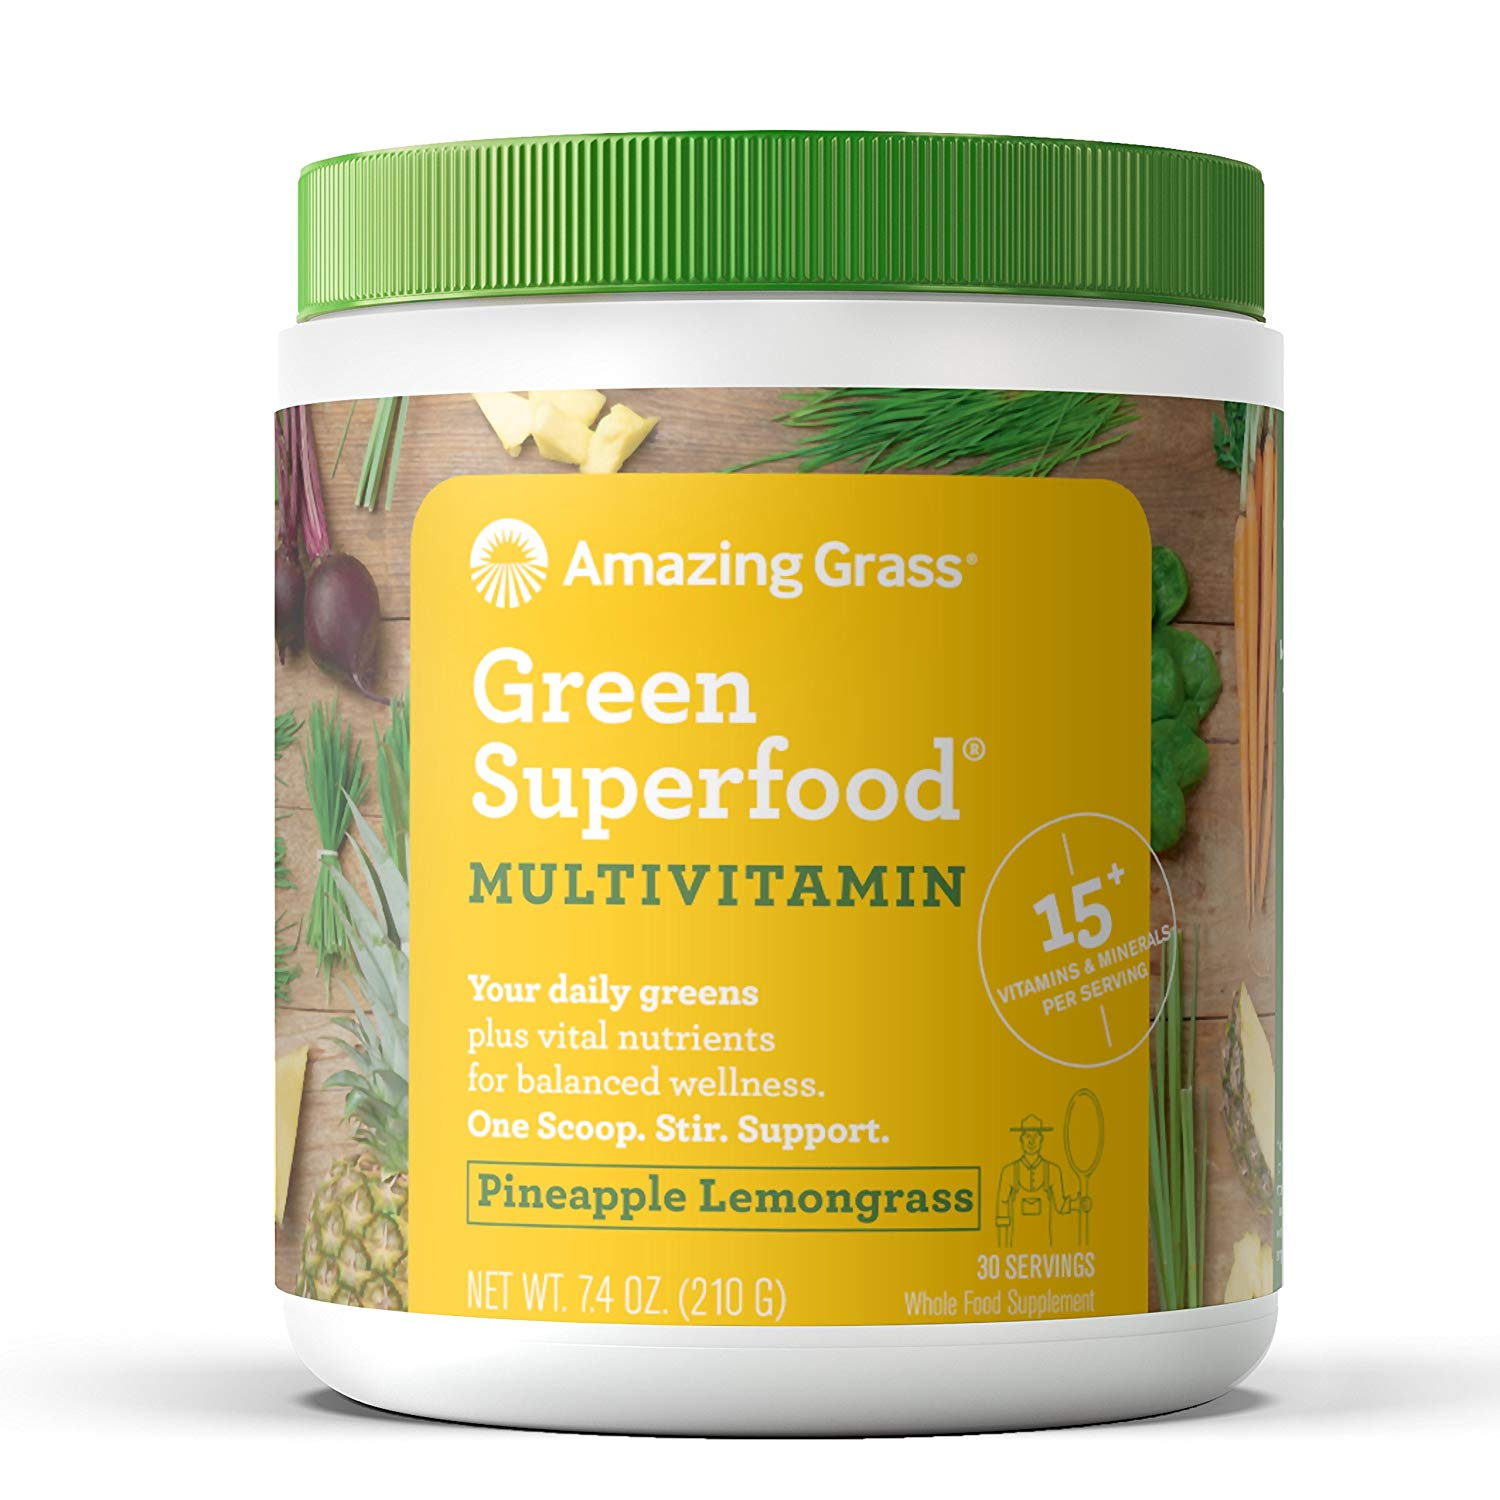 Amazing Grass Multivitamin Green Superfood Powder, Pineapple Lemongrass, 30 Servings